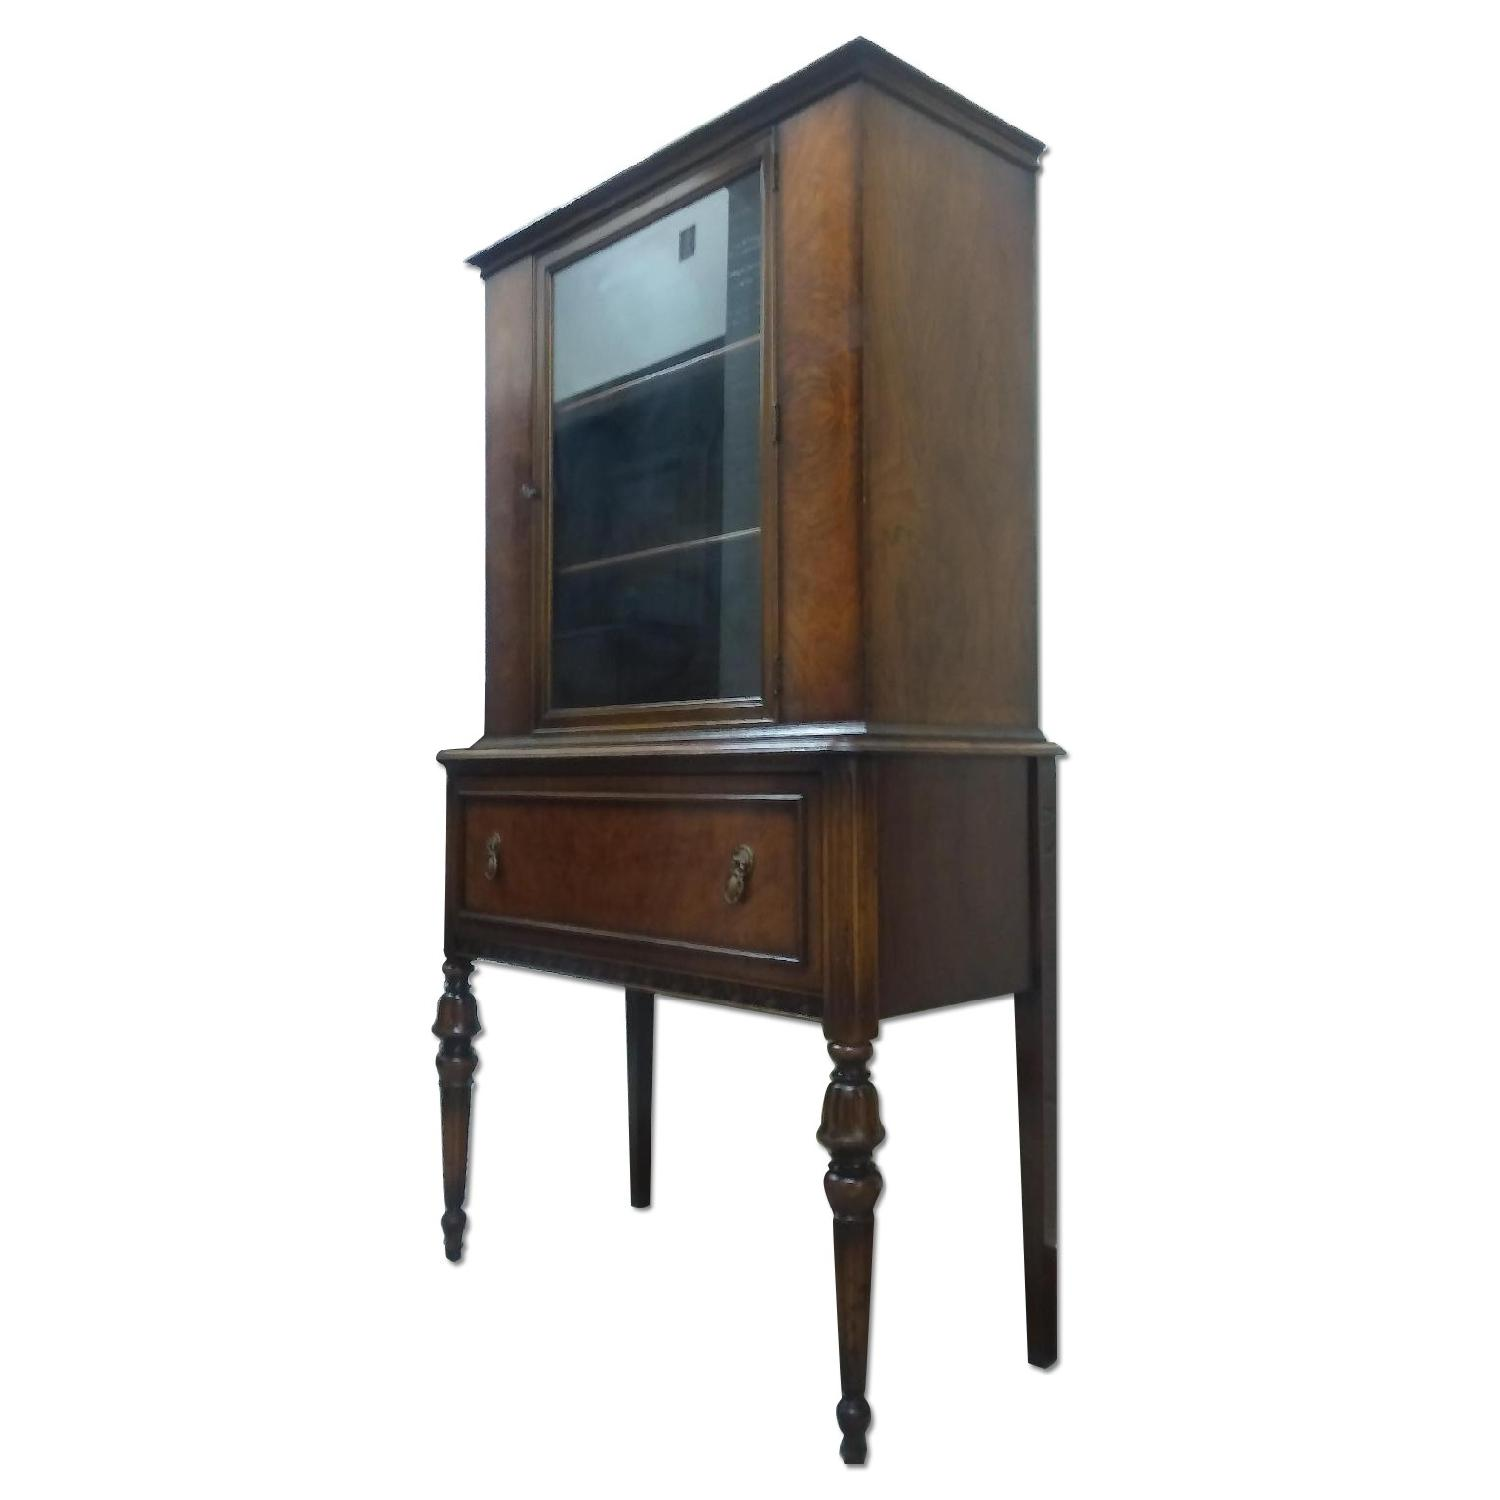 Berkey and Gay Furniture Antique China Cabinet - image-0